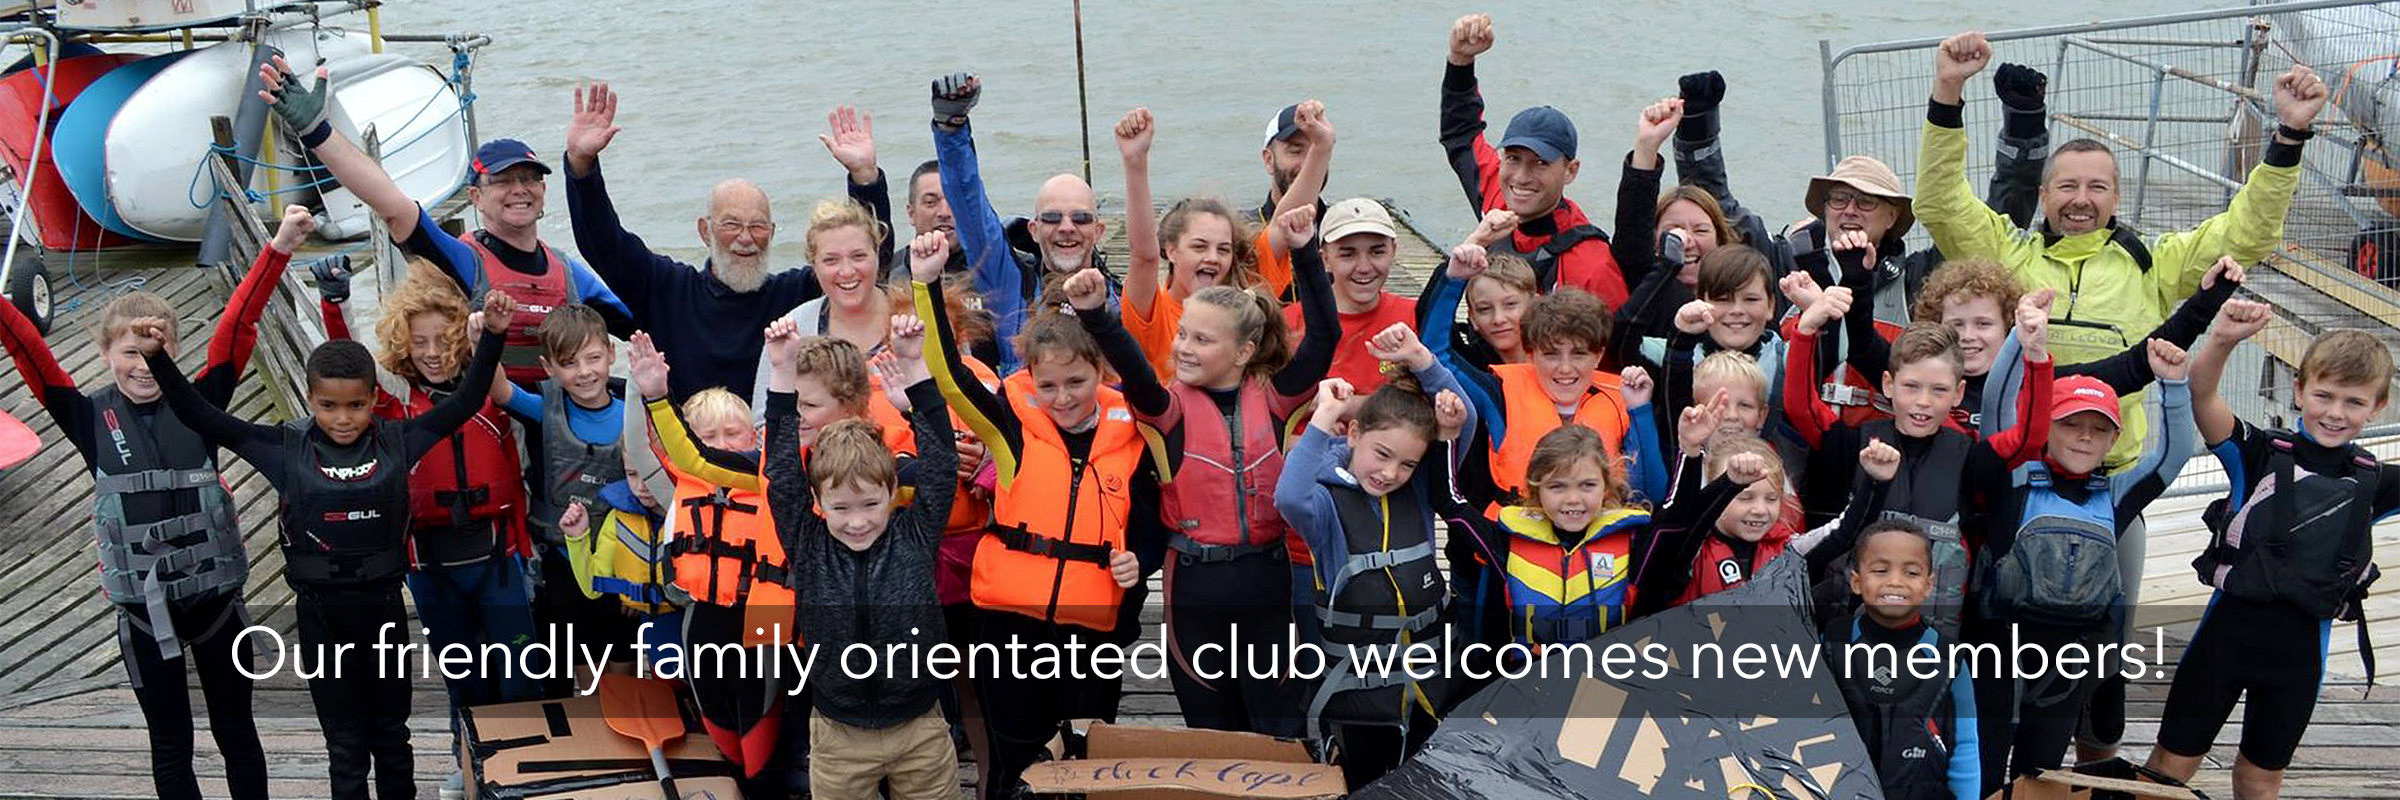 Permalink to:Our friendly family orientated club welcomes new members!